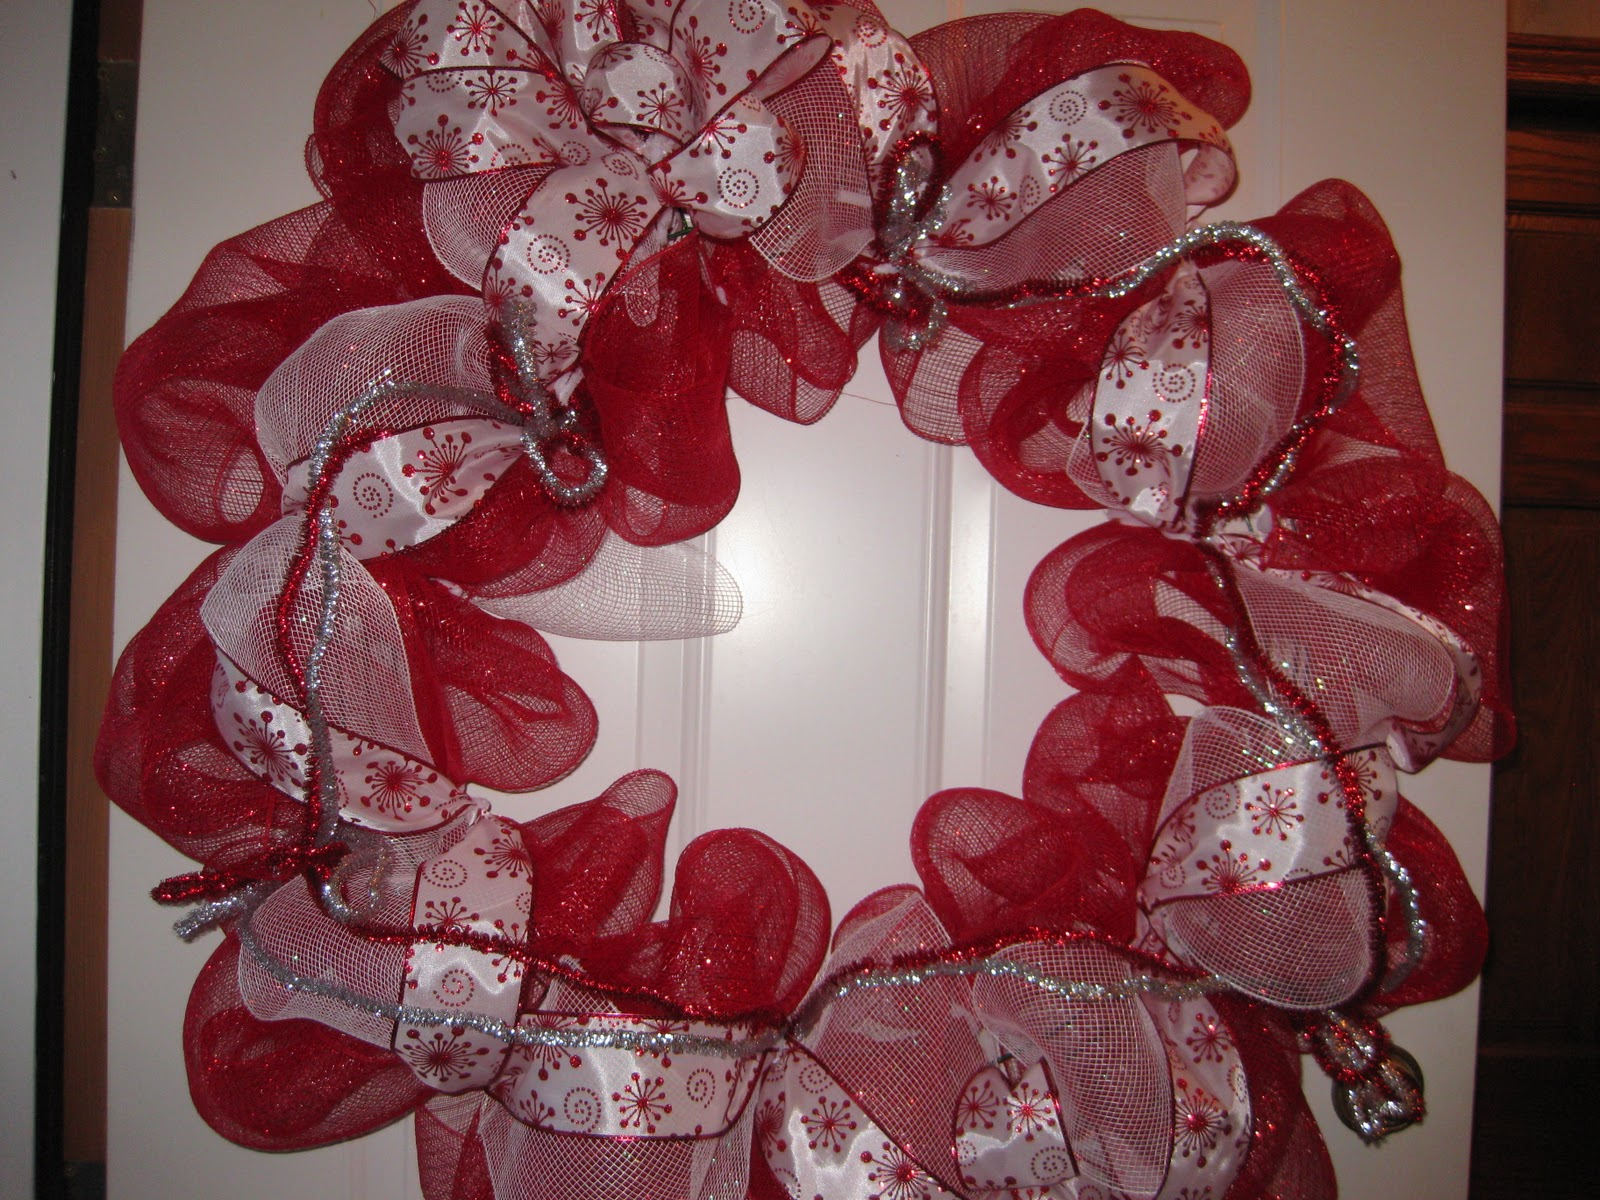 Art mesh christmas wreath - moisubkingswim39's soup